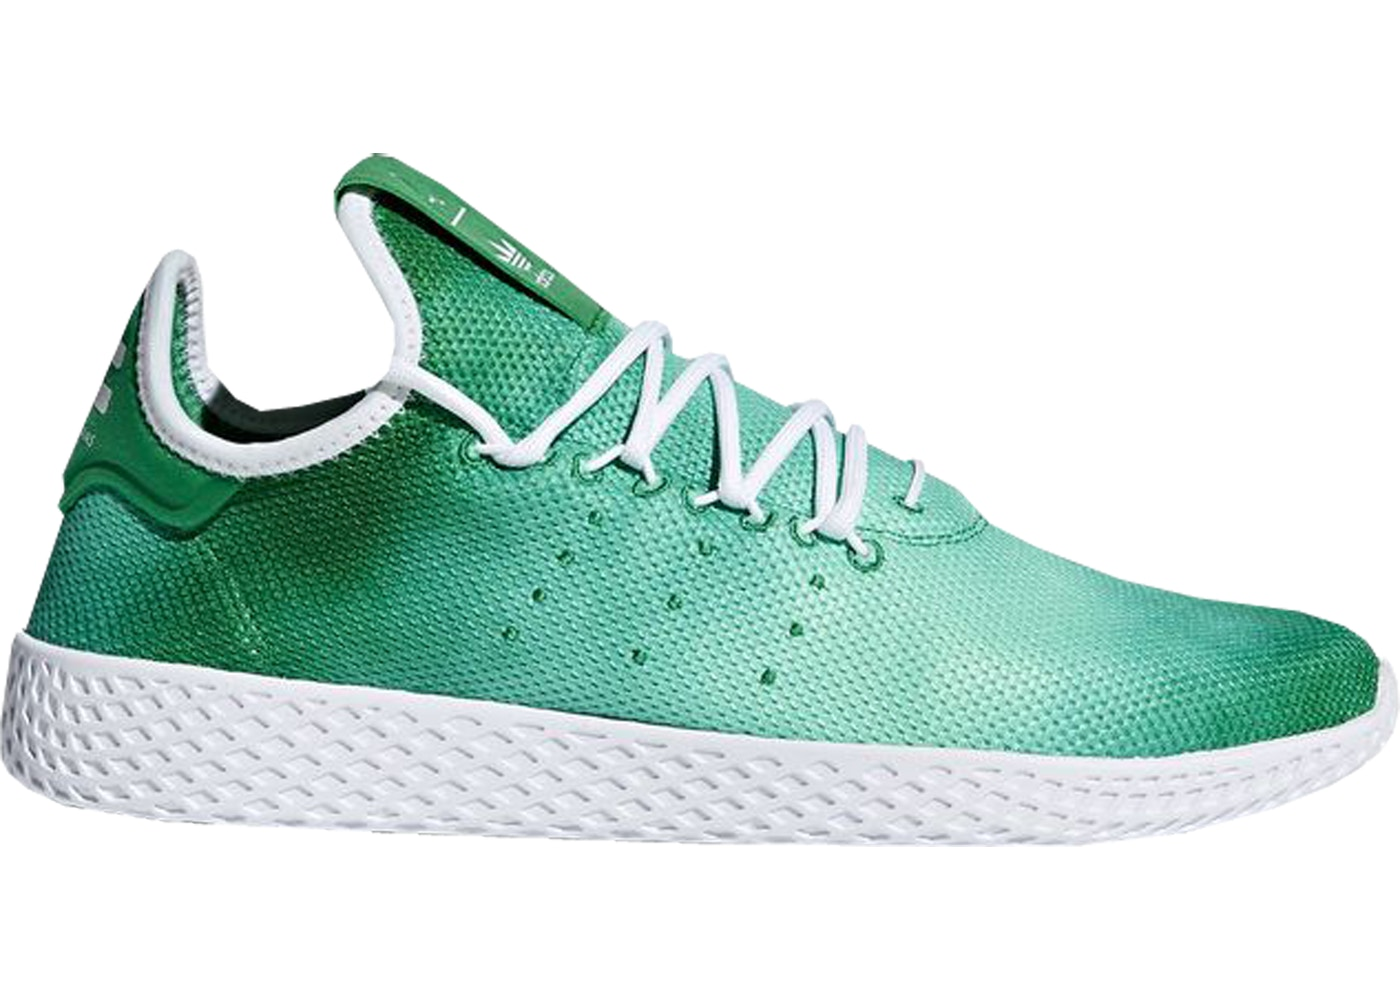 8d3d2224 Sell. or Ask. Size: 11.5. View All Bids. adidas Tennis HU Pharrell Holi  Green